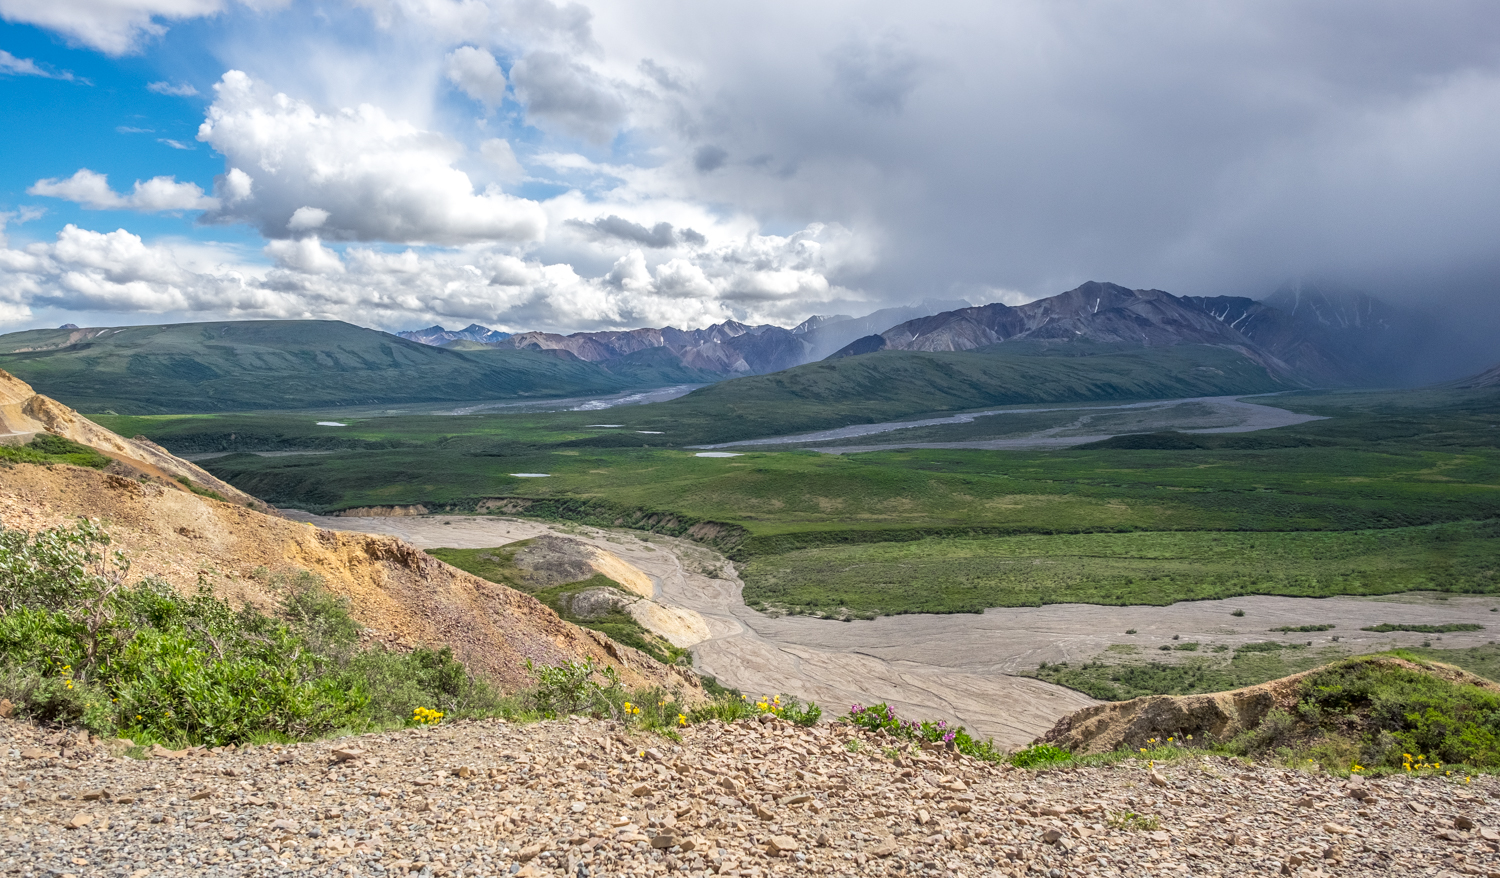 An image of weather changing at Denali National Park, Alaska, USA